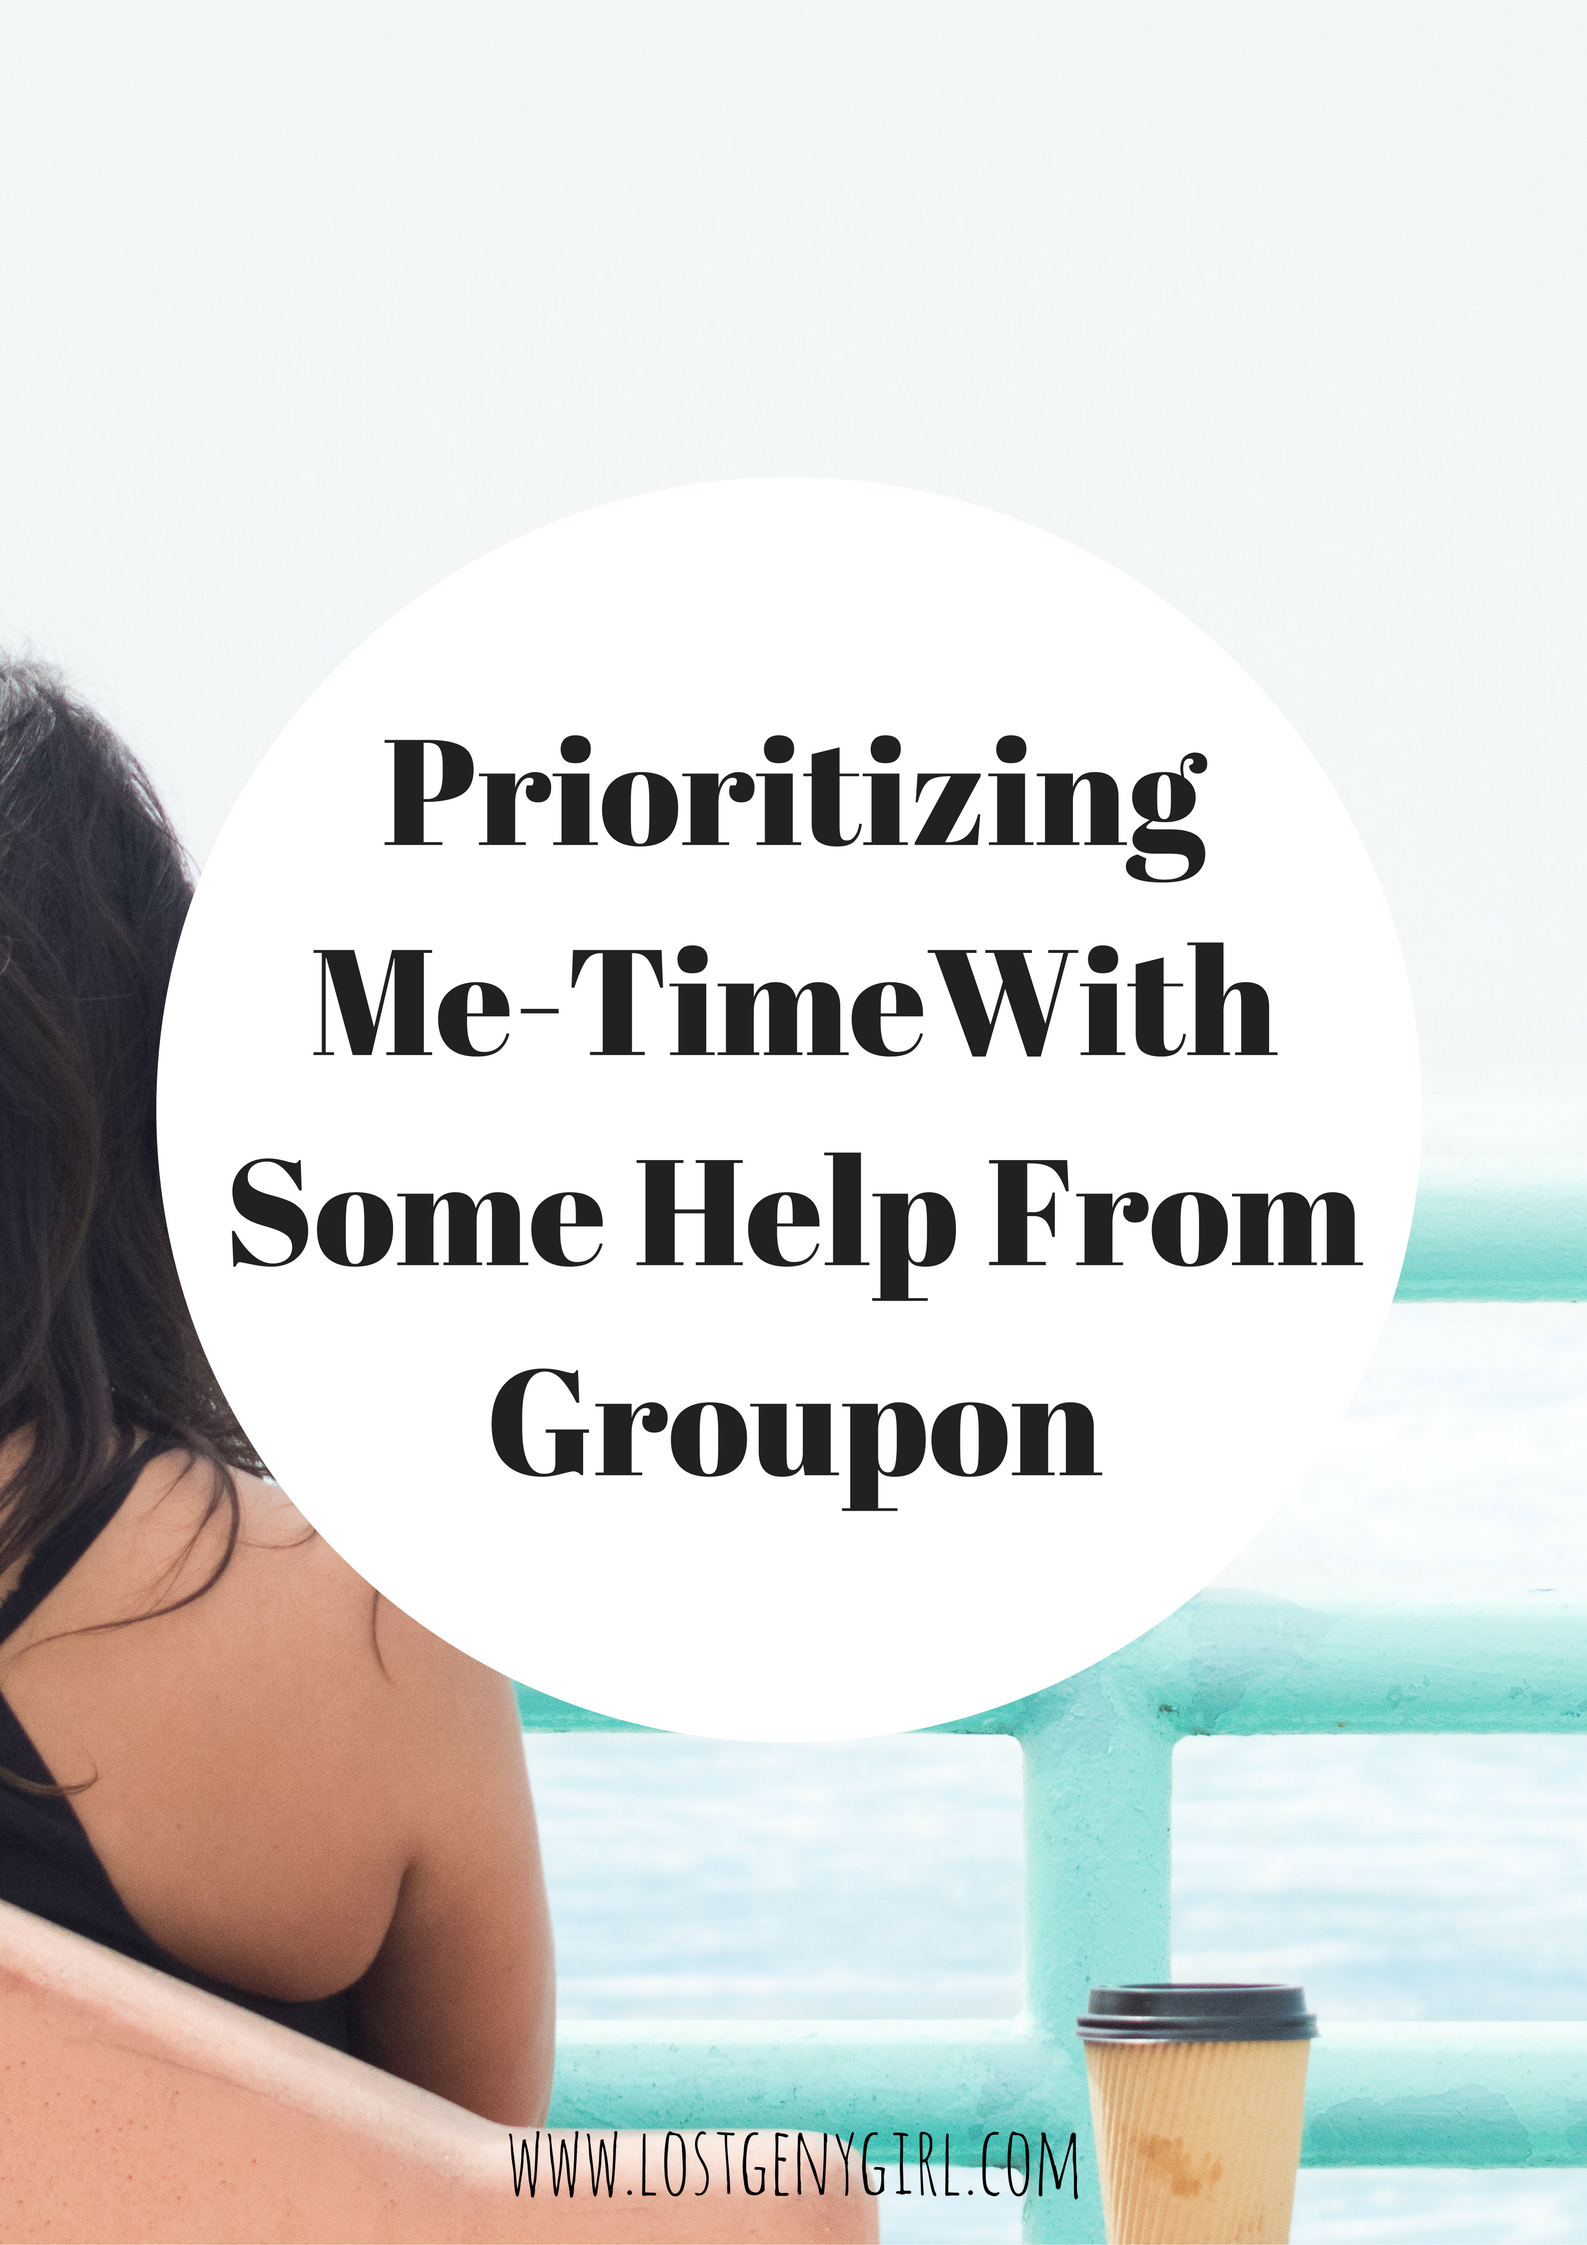 Prioritizing Me-Time With Some Help From Groupon